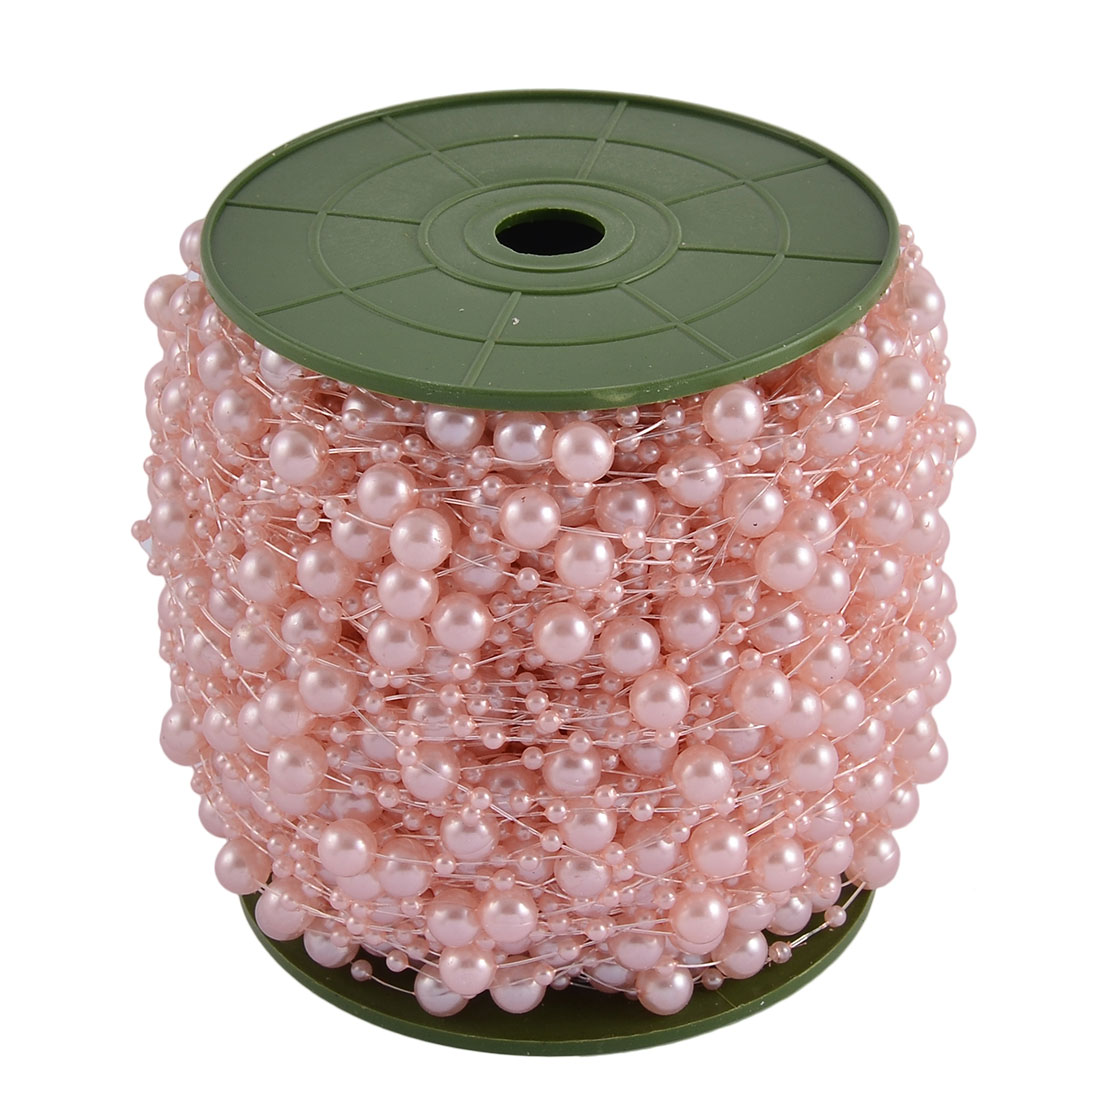 Wedding Party Crafting DIY Garland Flower Table Decoration Imitation Pearl Beads String Roll Pale Pink